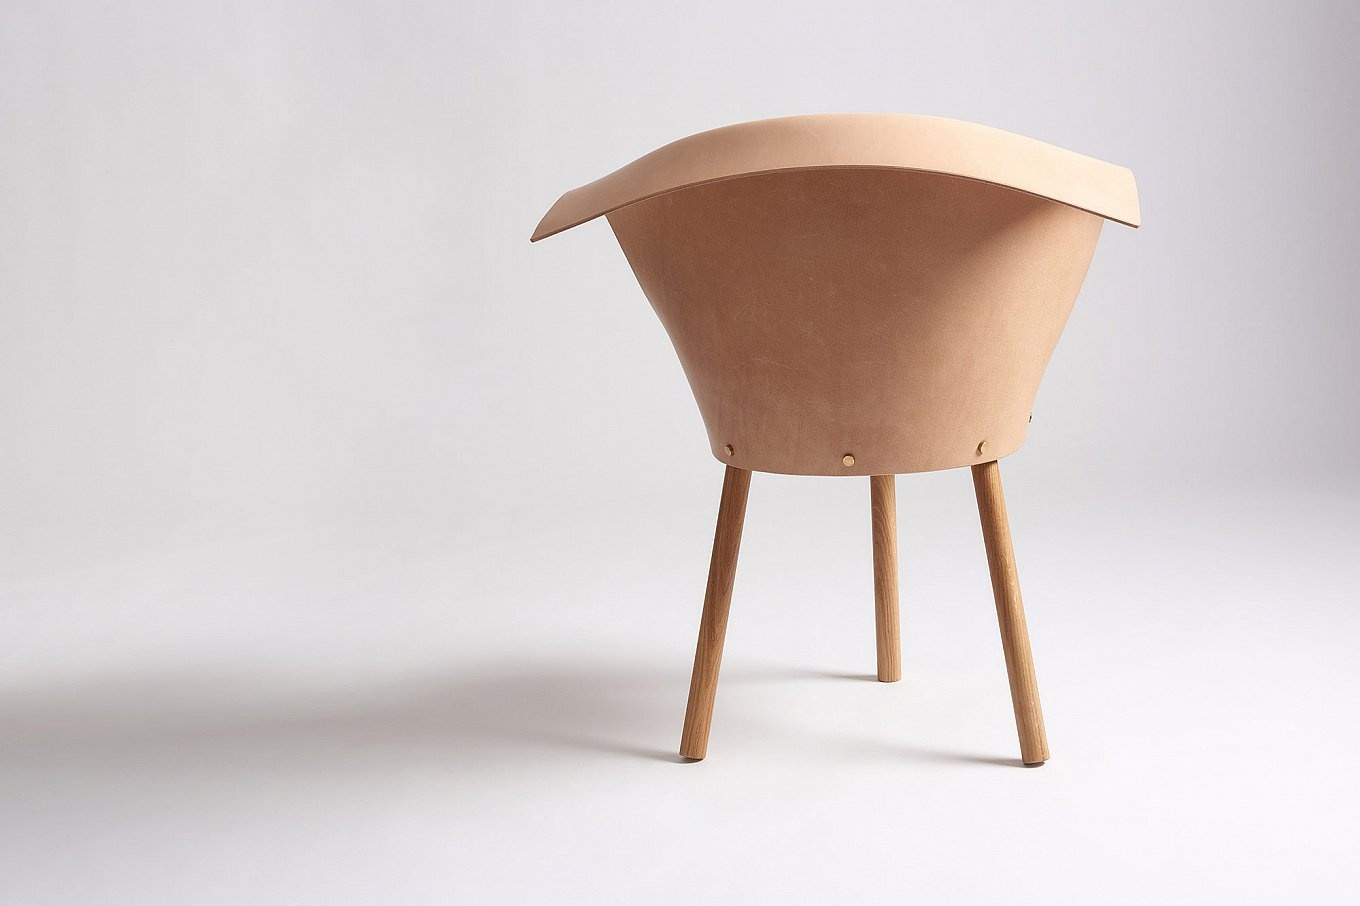 babu-and-clop-chairs-by-toru-gessato-4-1360x906